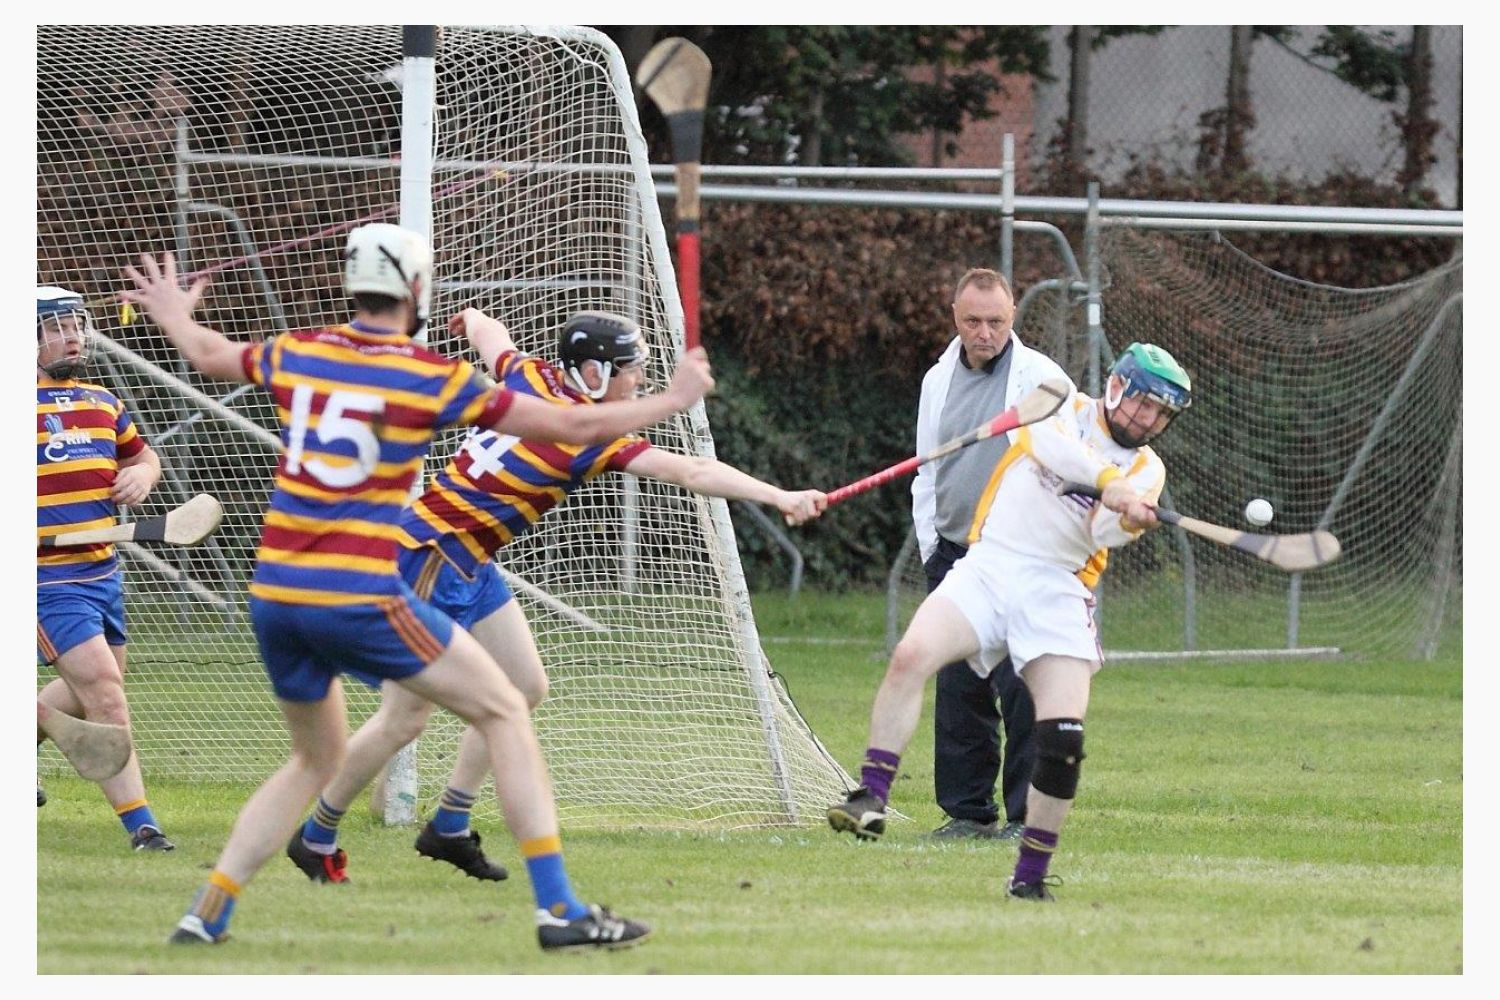 Strong performance by Intermediate Hurling Team in Quarter Final